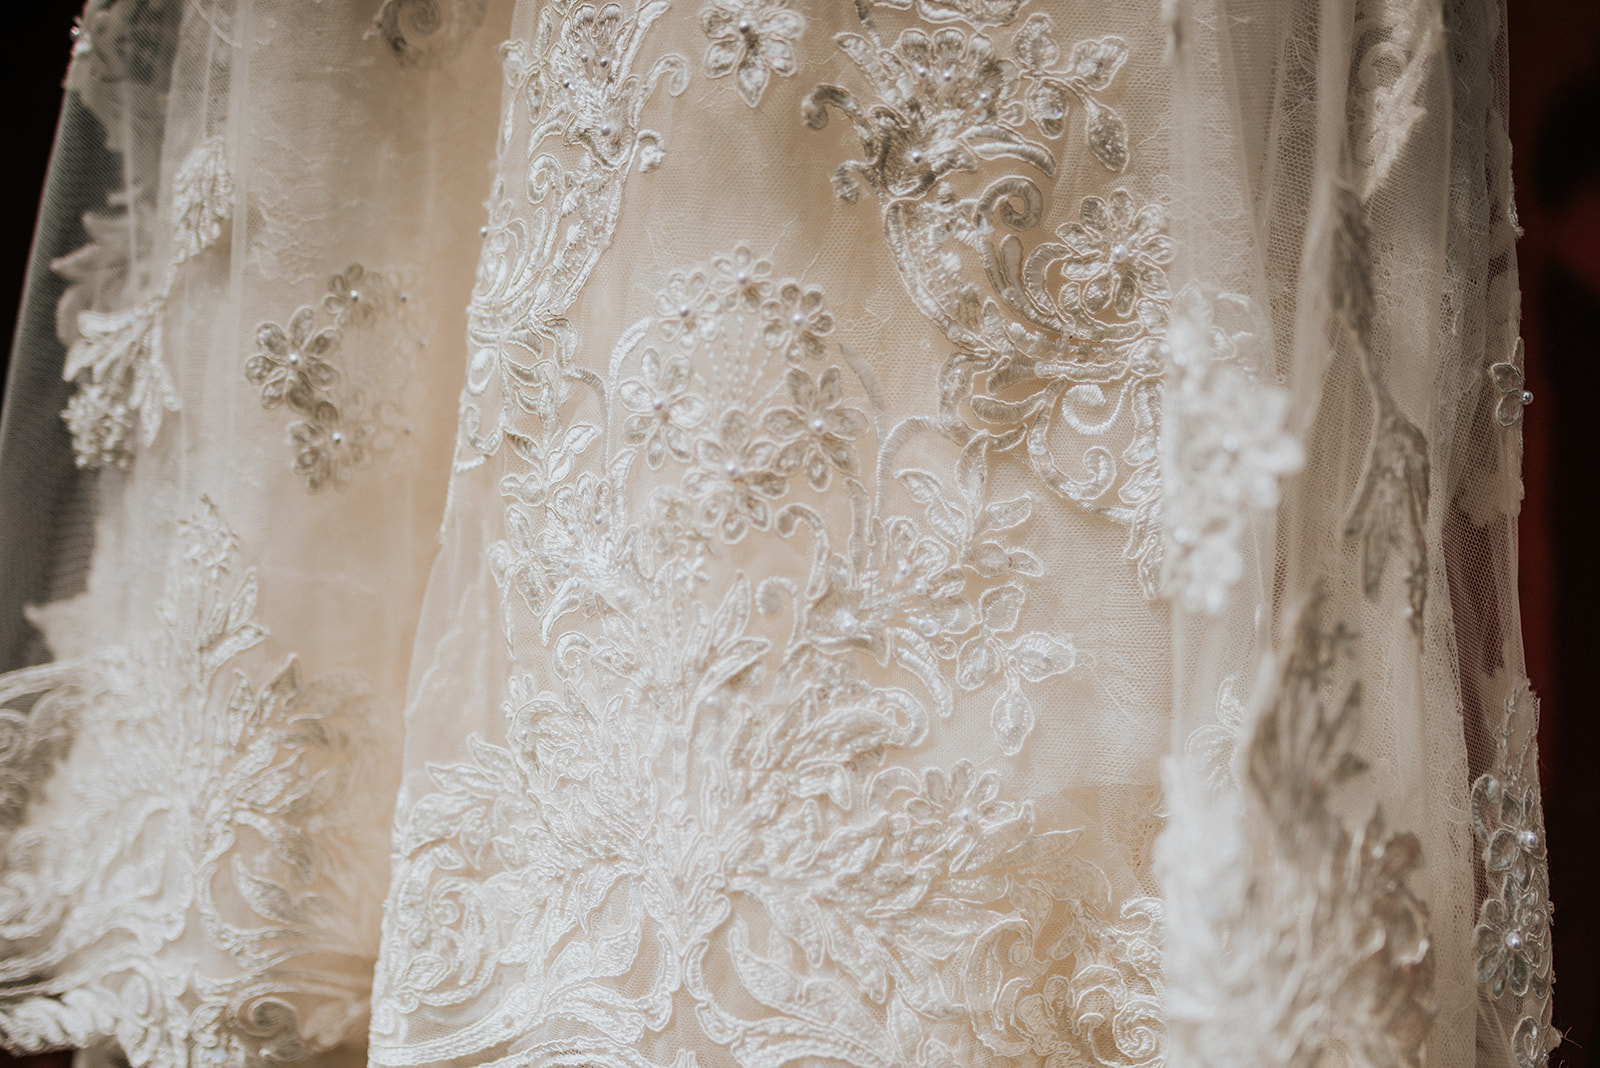 overthevineswisconsinwedding_0186.jpg